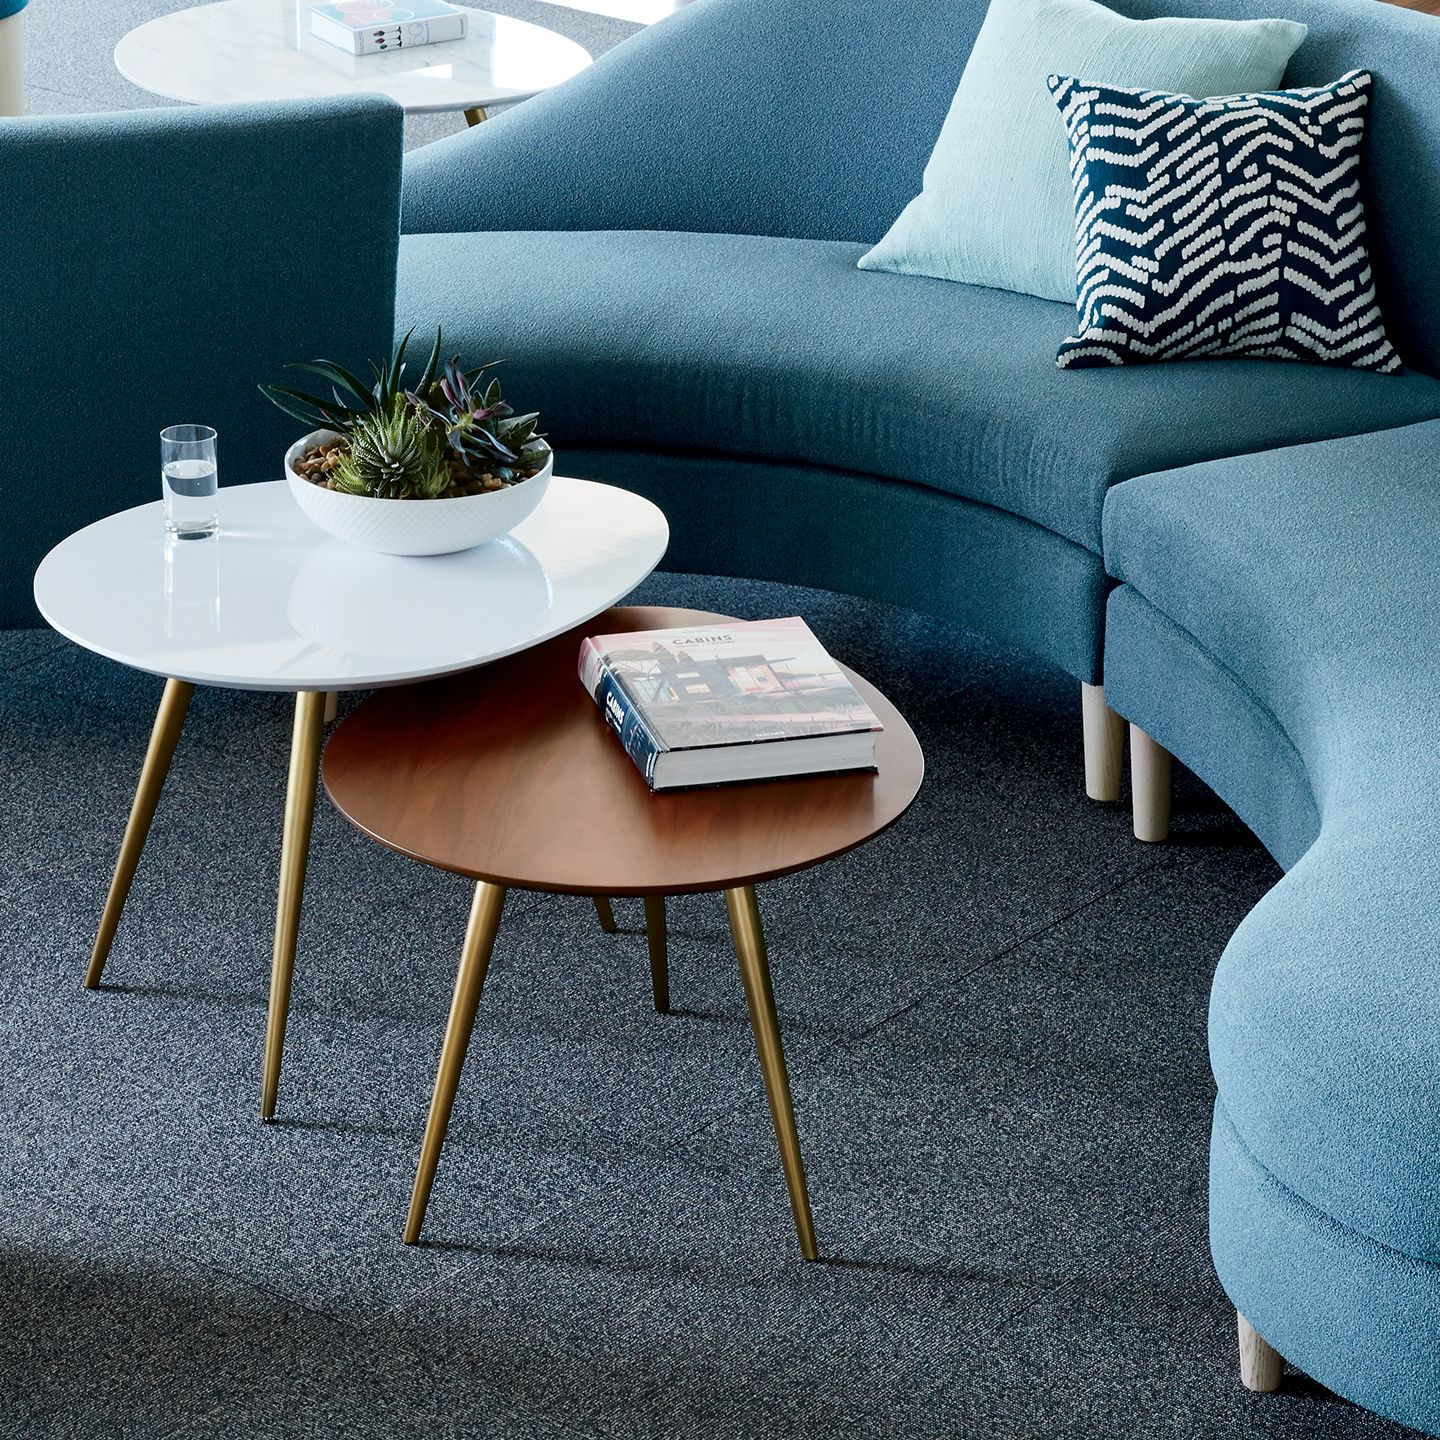 Lily Pad Coffee Table West Elm Workspace Furniture